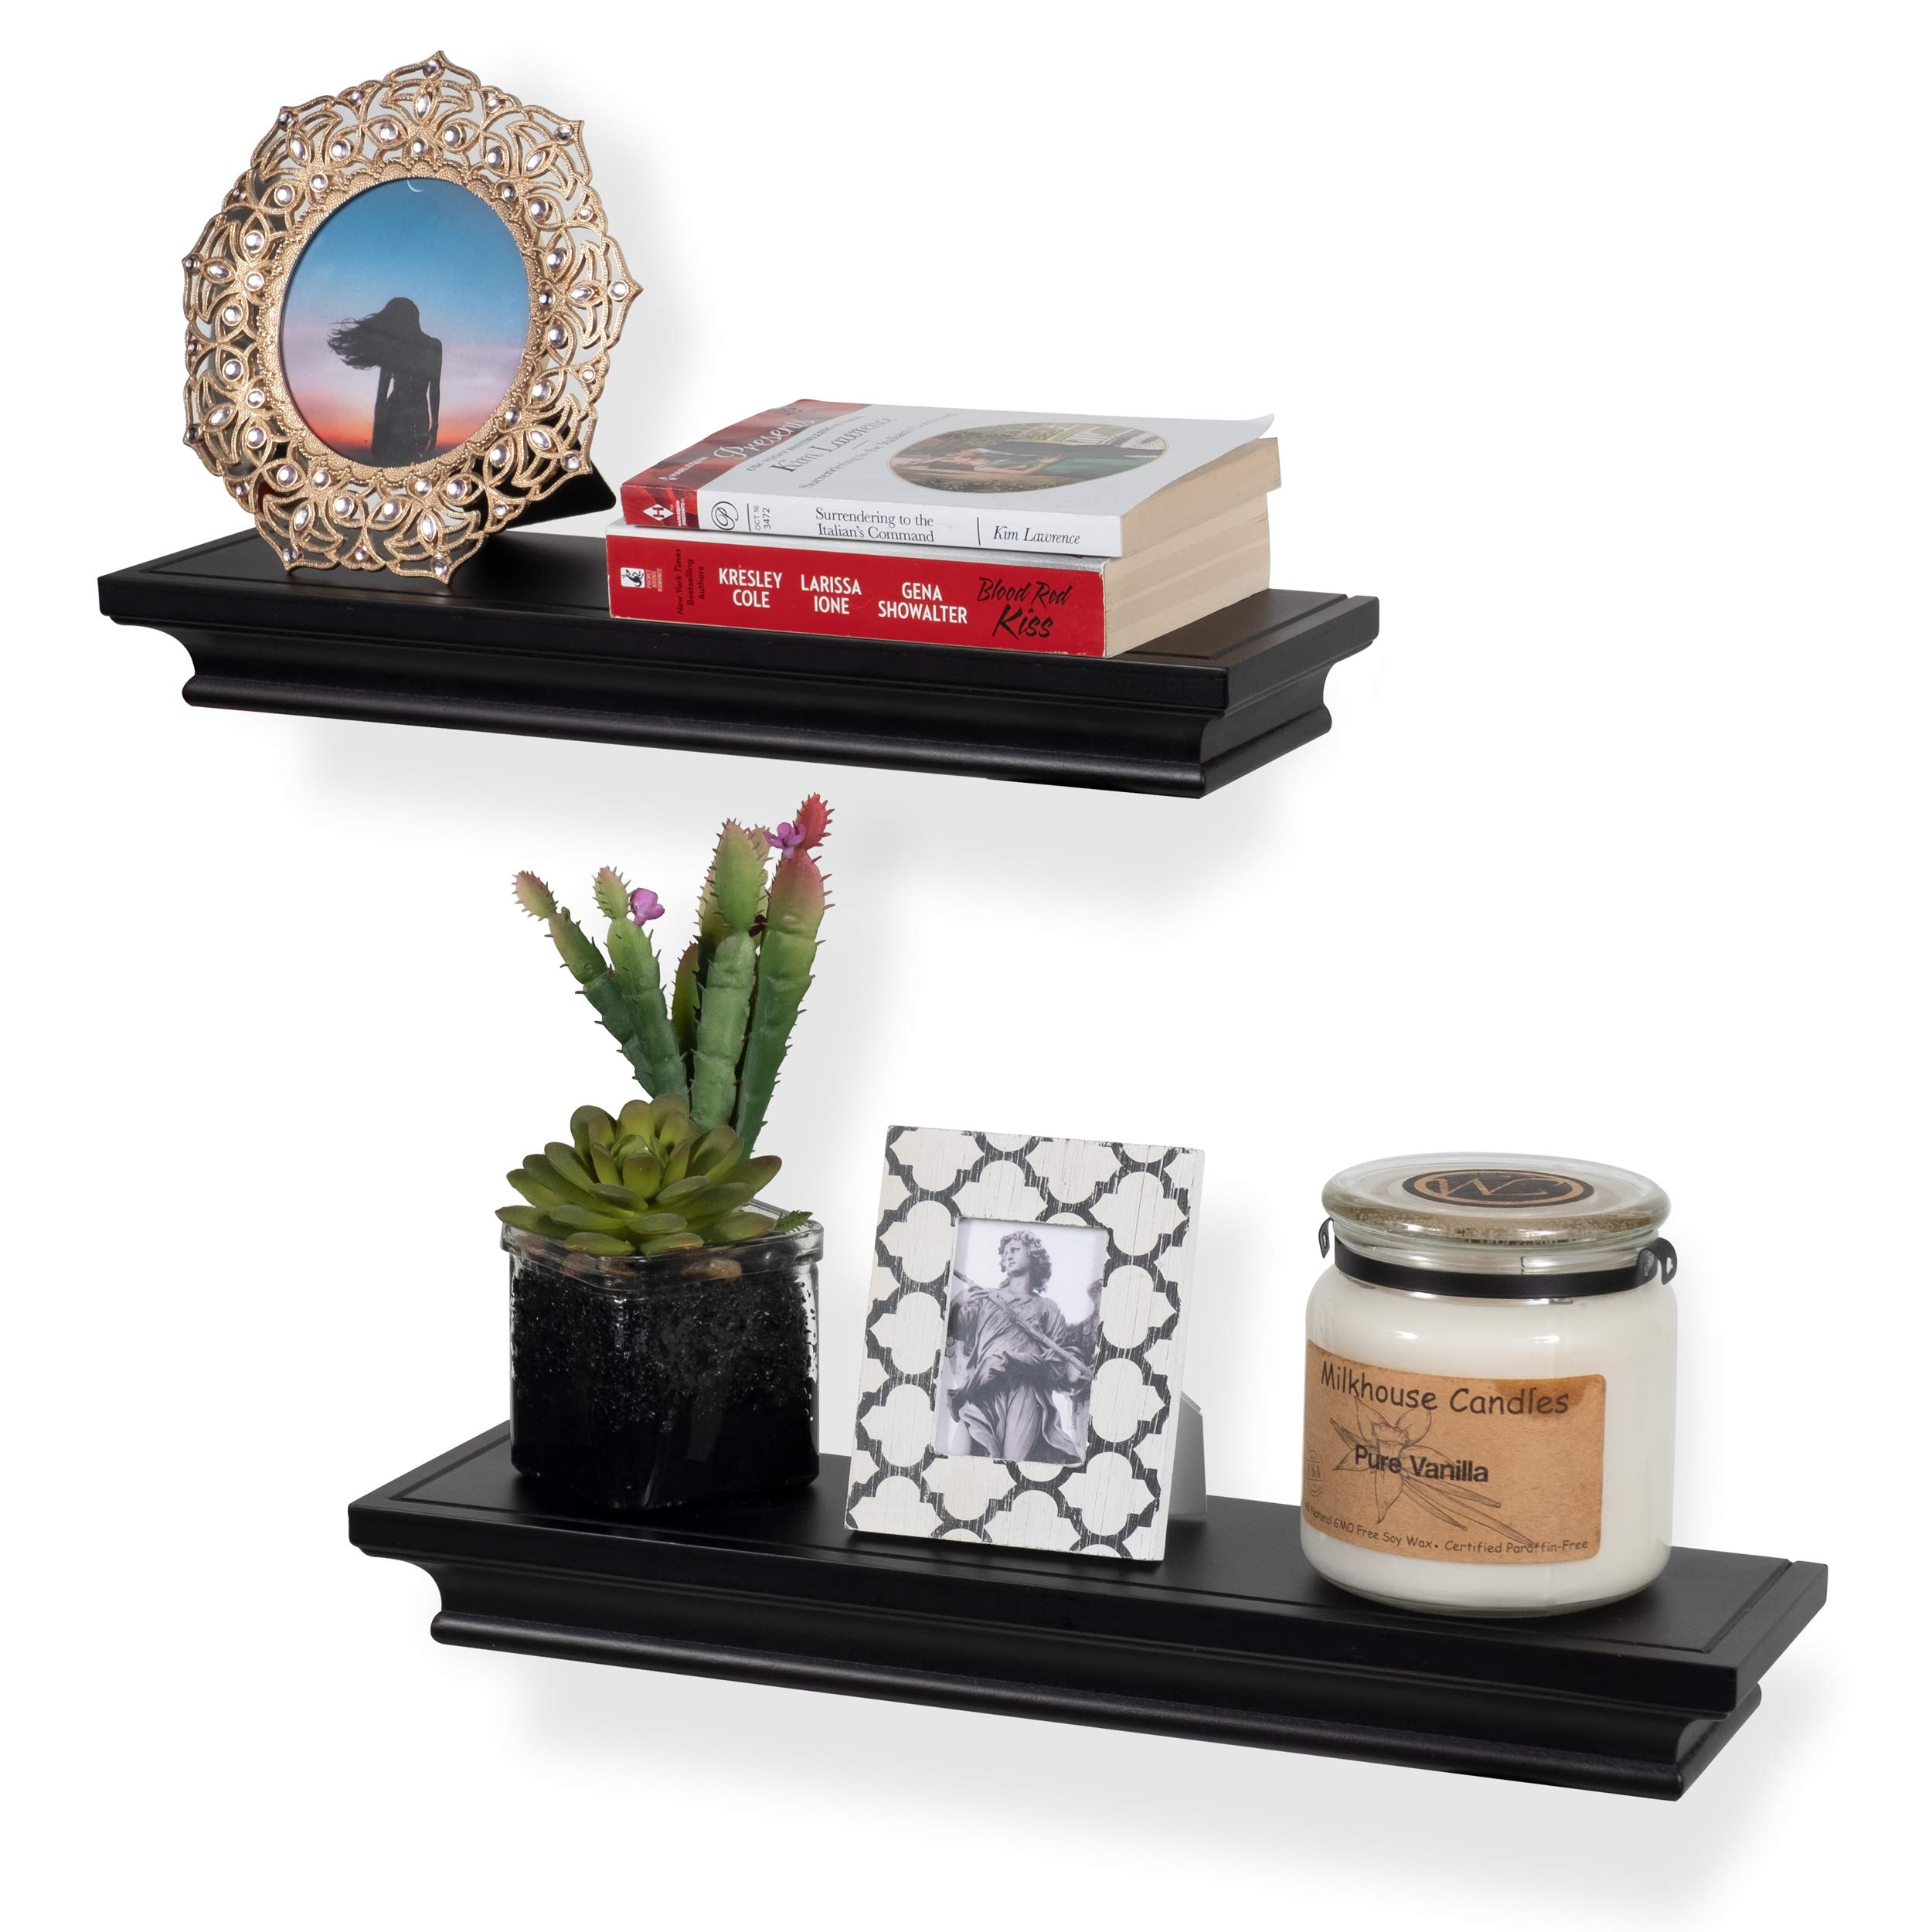 brightmaison Crown Molding Floating Shelves Picture Ledge - 2 Set Shelf - for Frames Book Display Décor with Concealed Metal Bracket for Stable Wall Mount (Black) by brightmaison